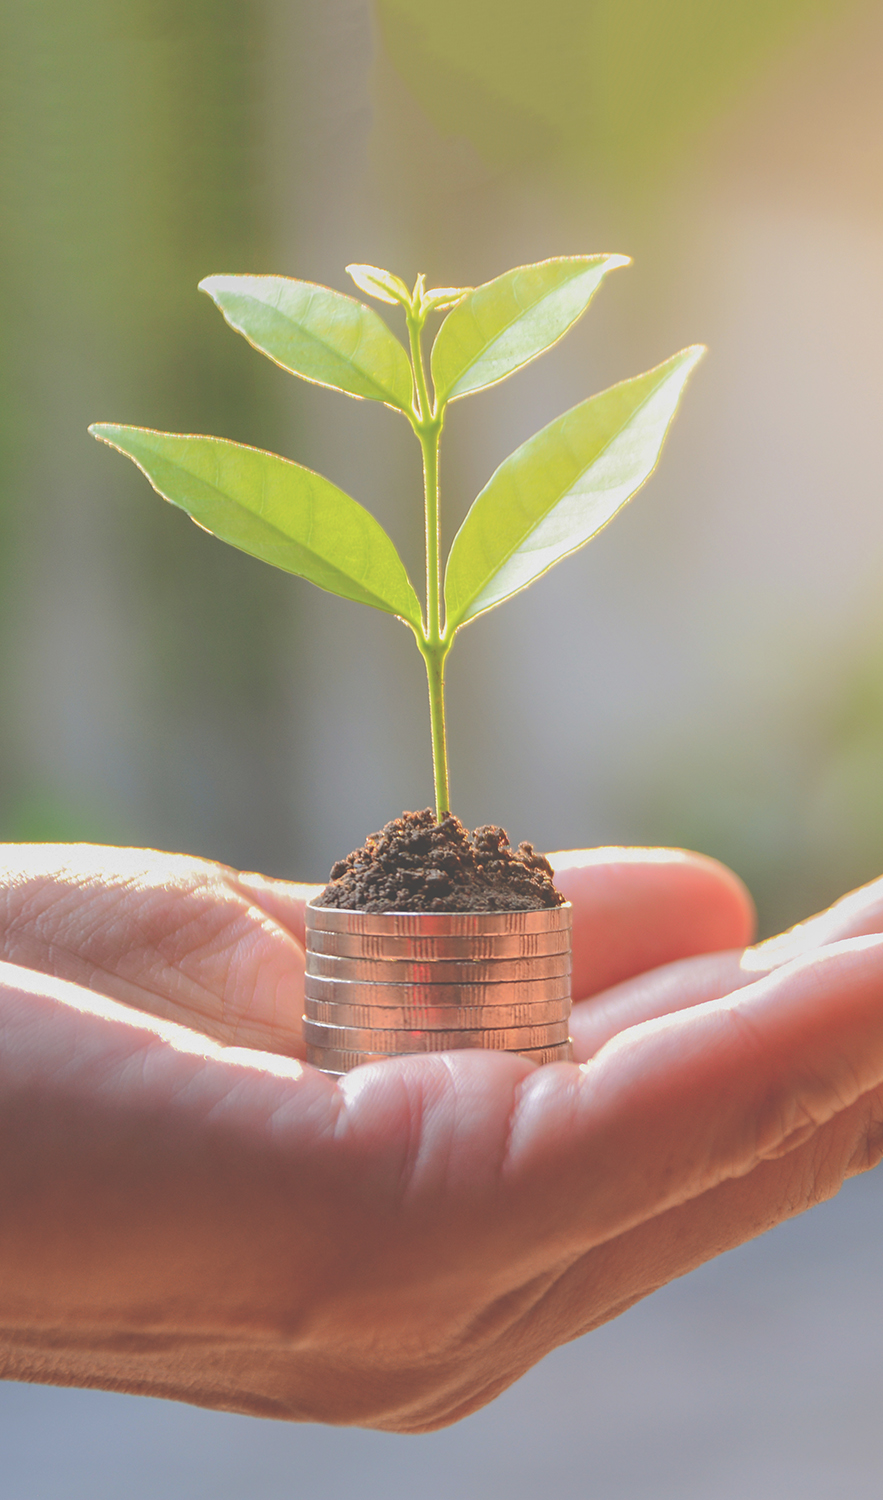 Concept of money with plant growing from coins in hand. Financial and save money concept.